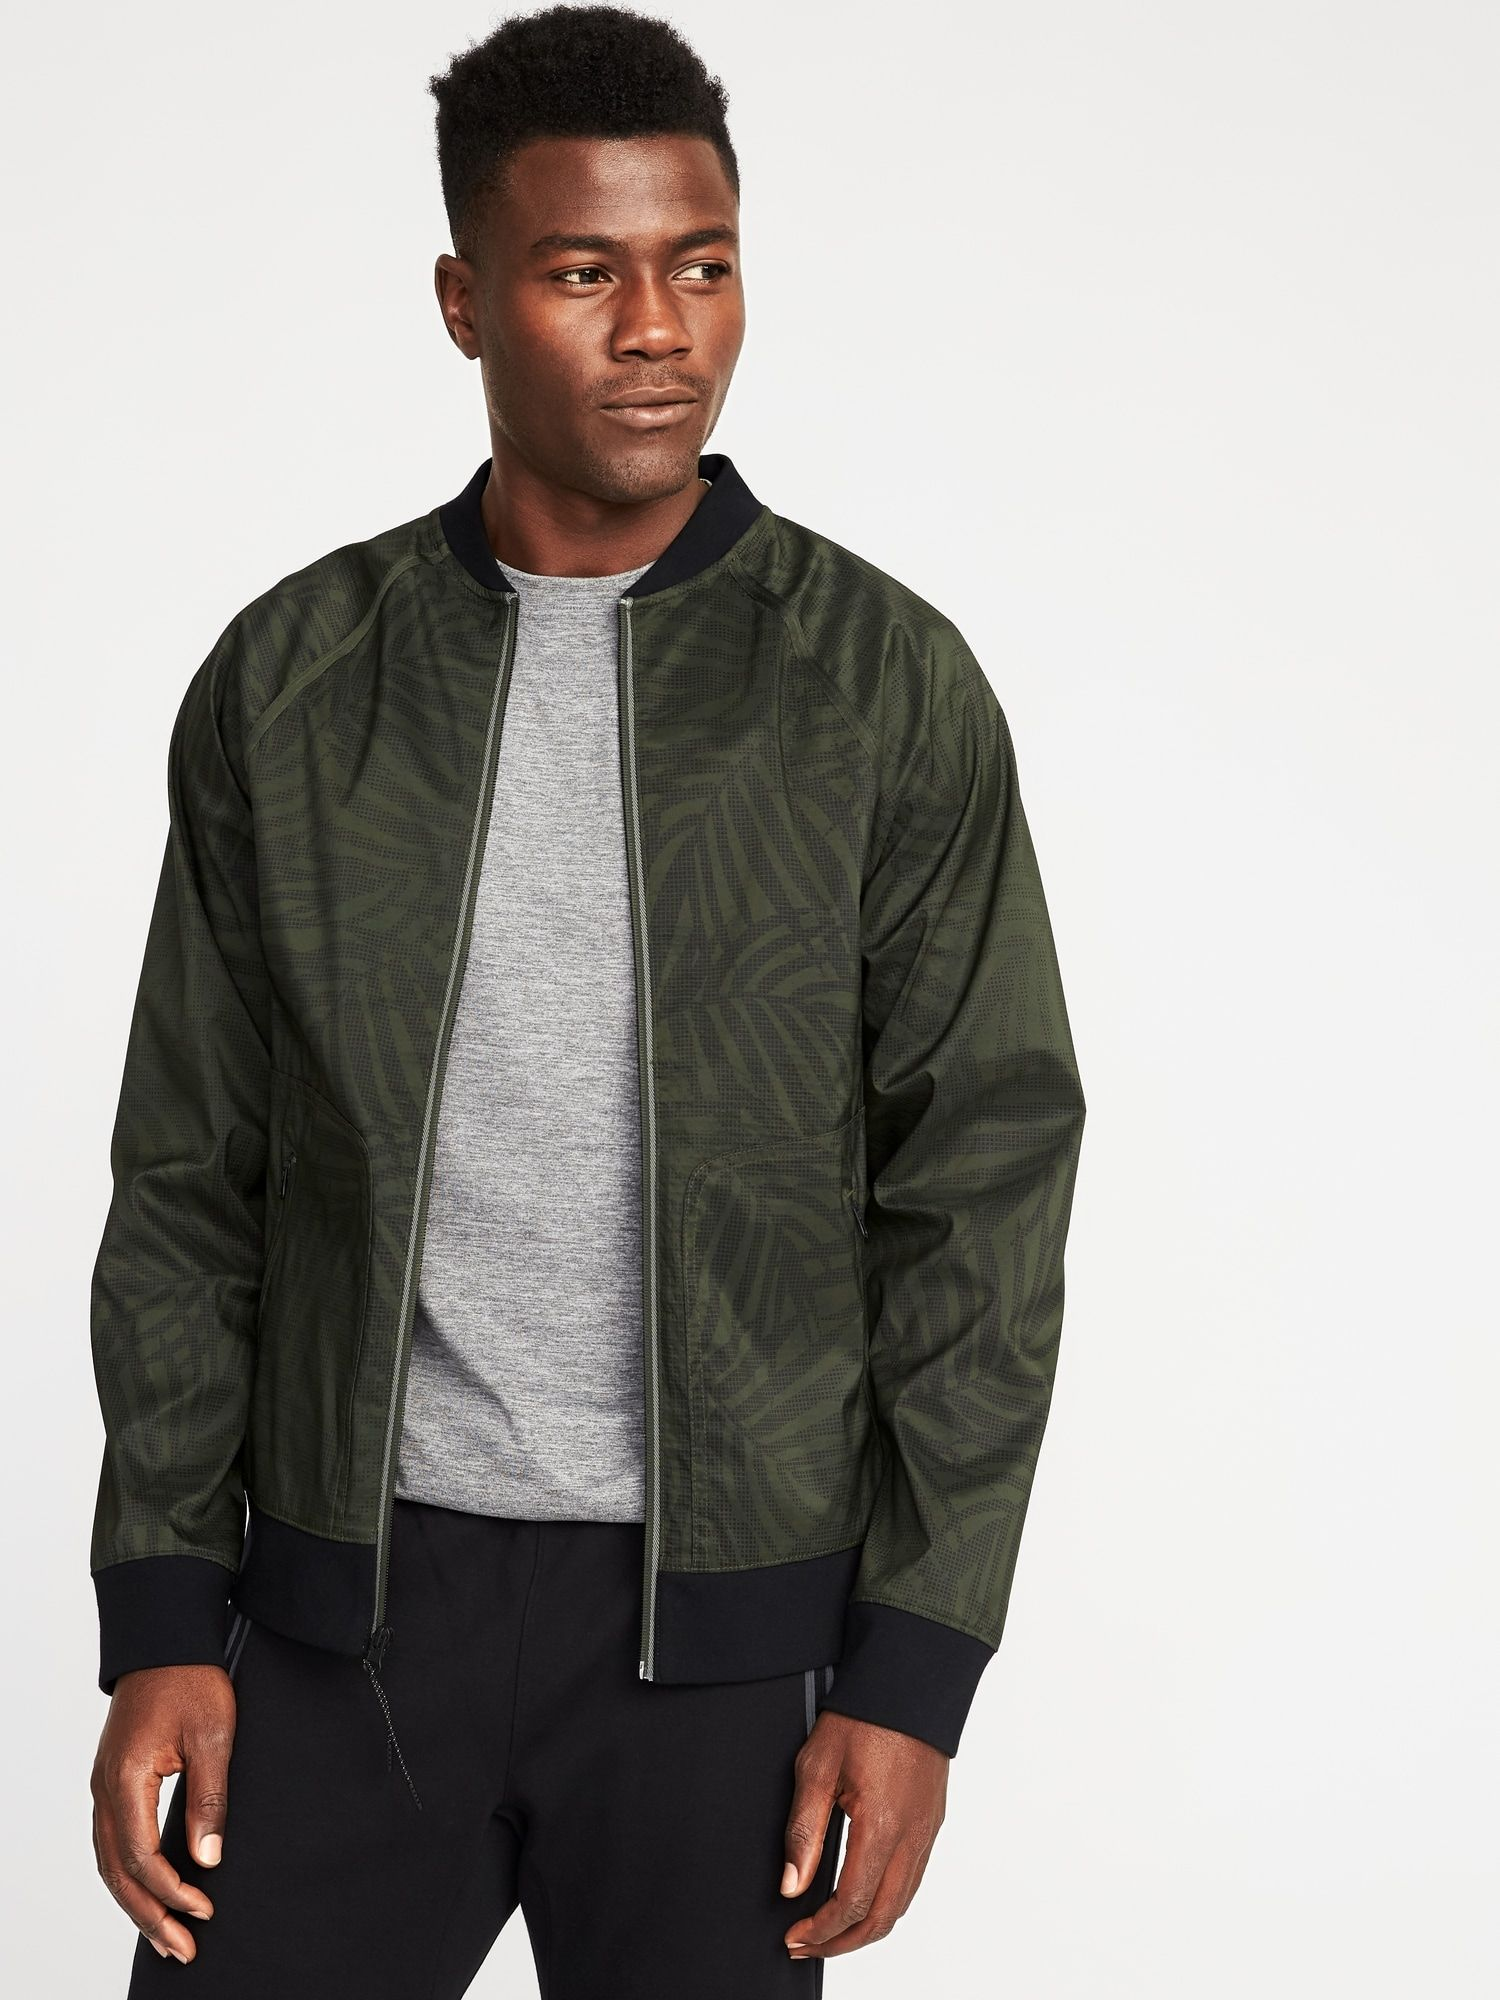 product photo Bomber jacket men, Bomber jacket, Old navy